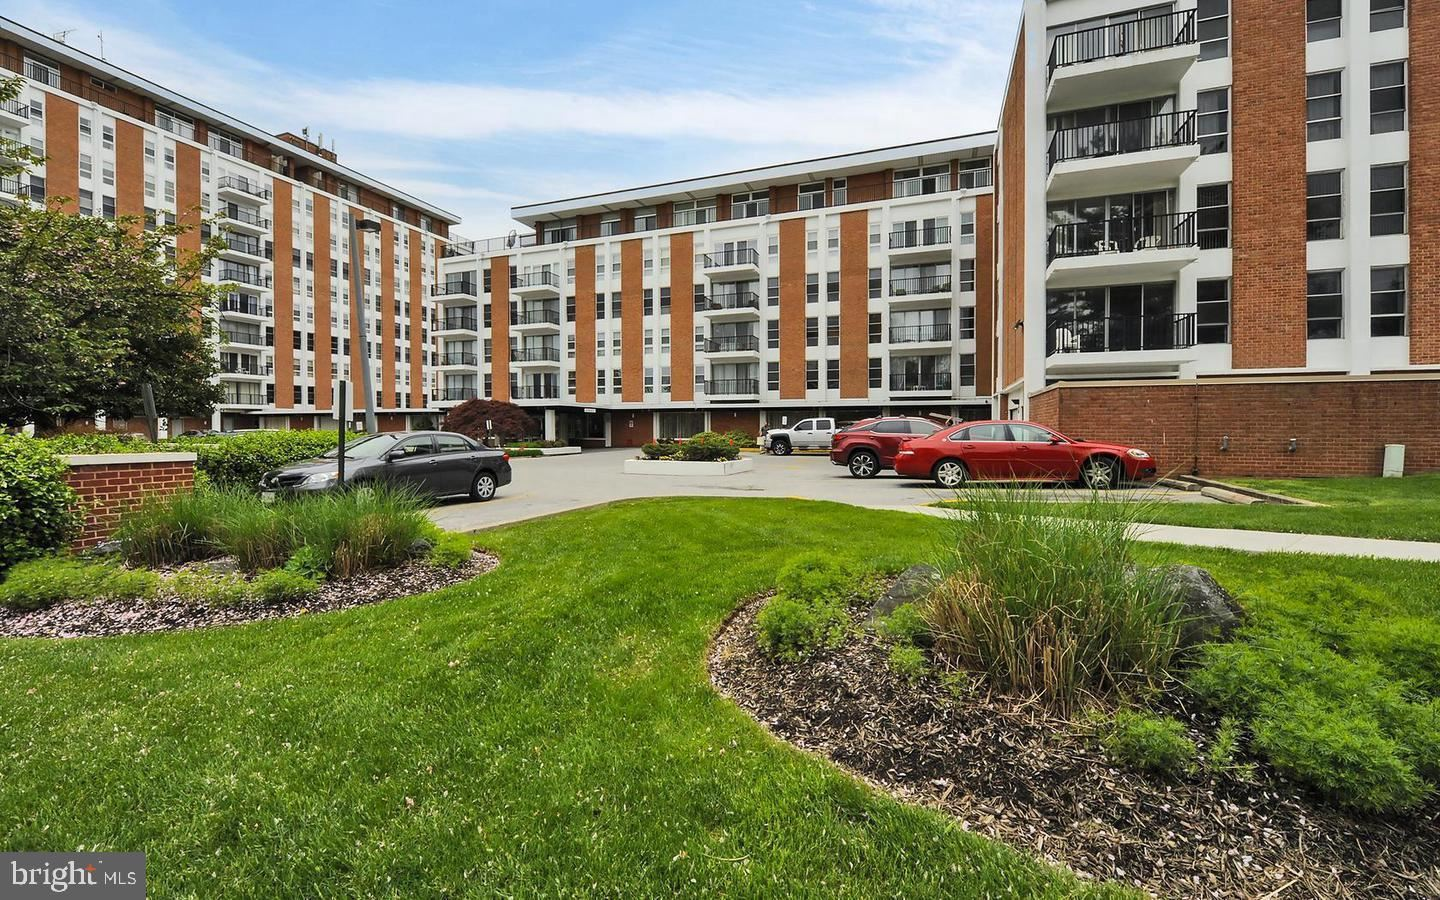 3601 CLARKS LN #330, Baltimore, MD 21215 - MLS#: MDBA541944